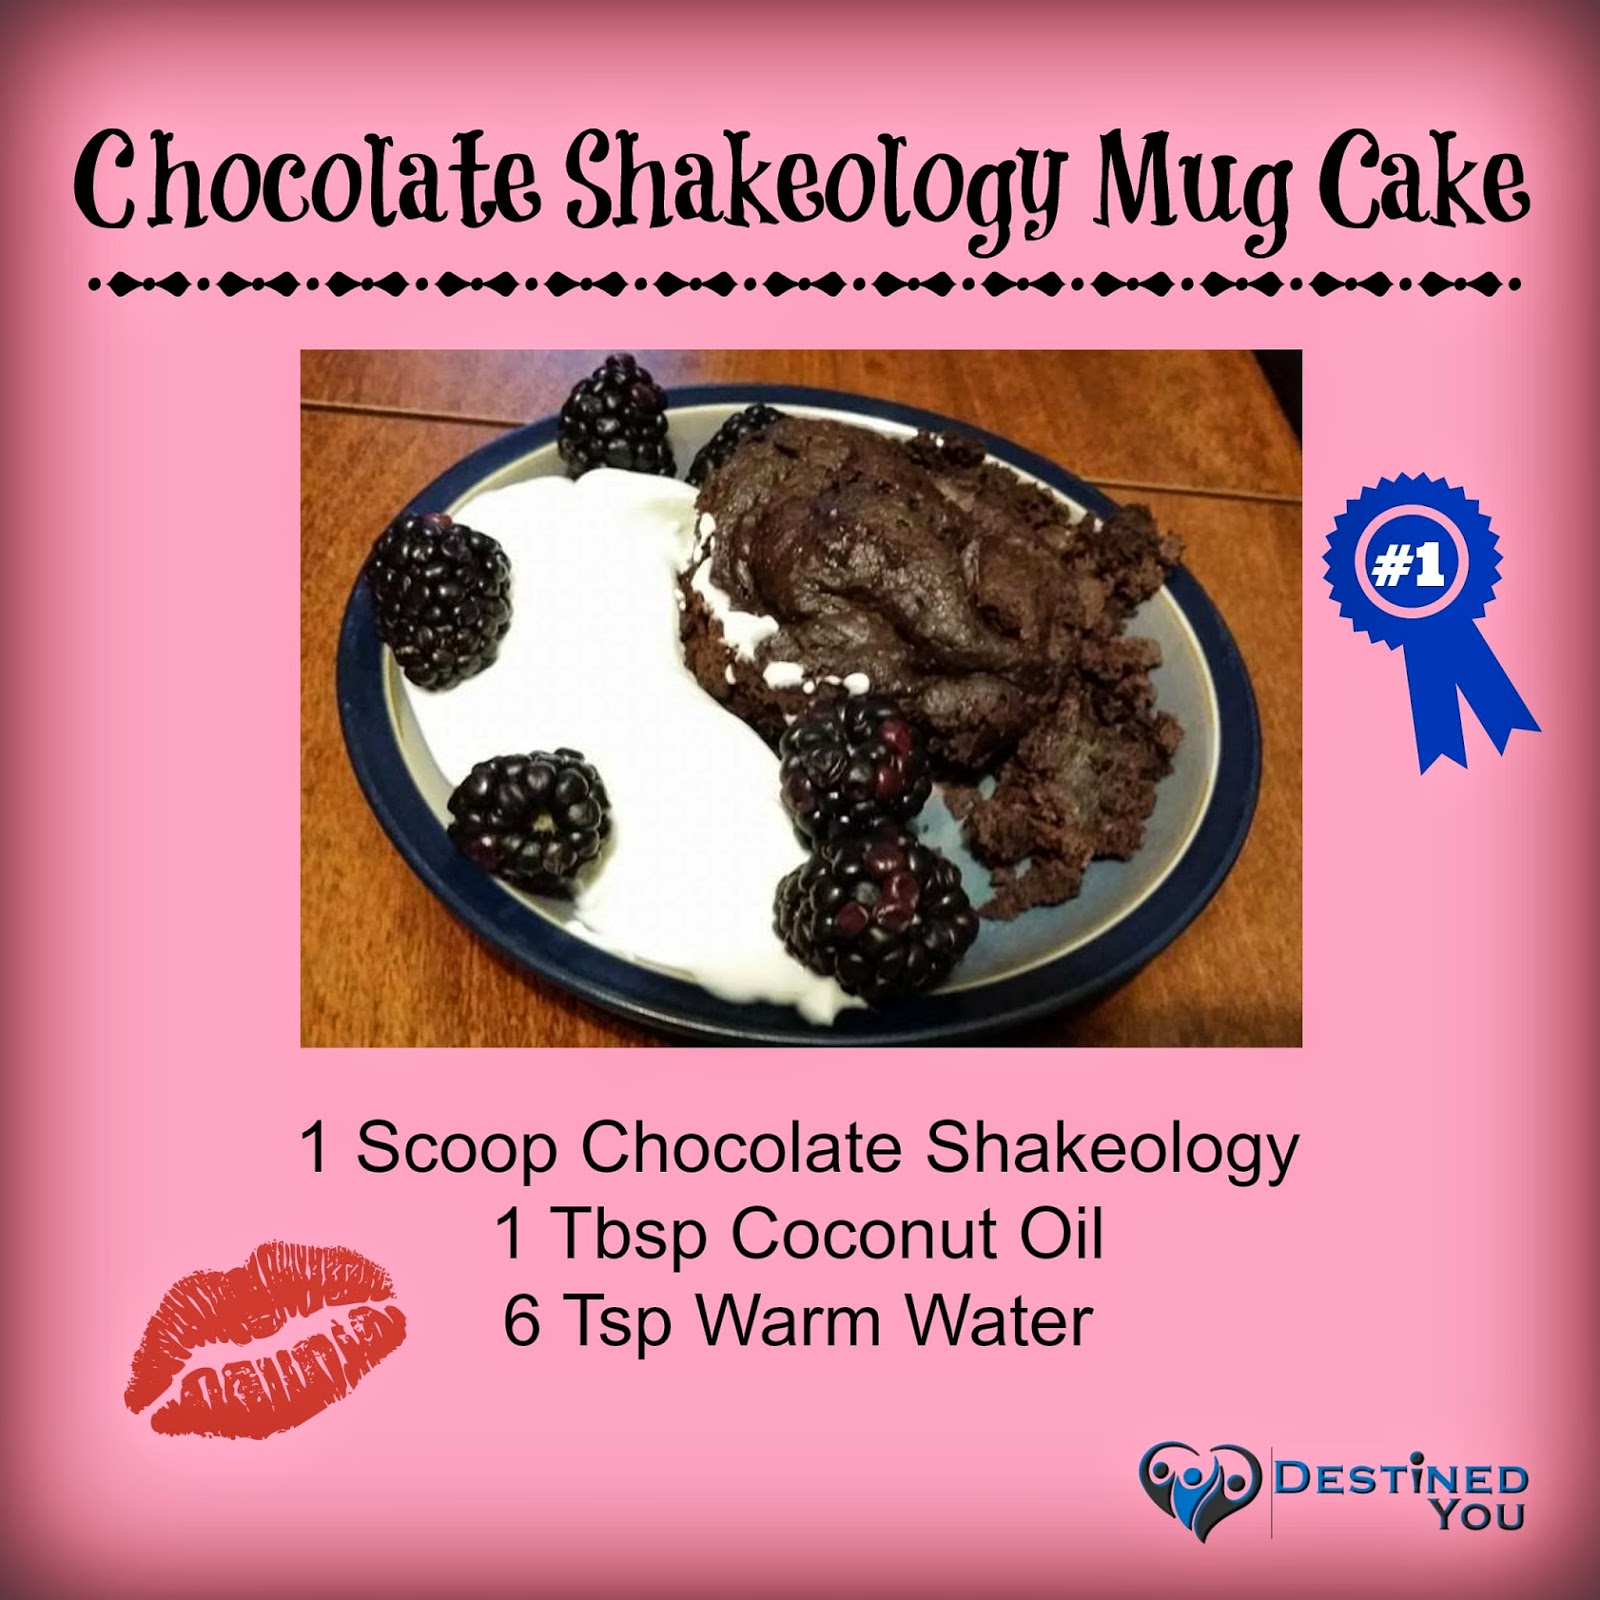 Destined You: Chocolate Shakeology Mug Cake